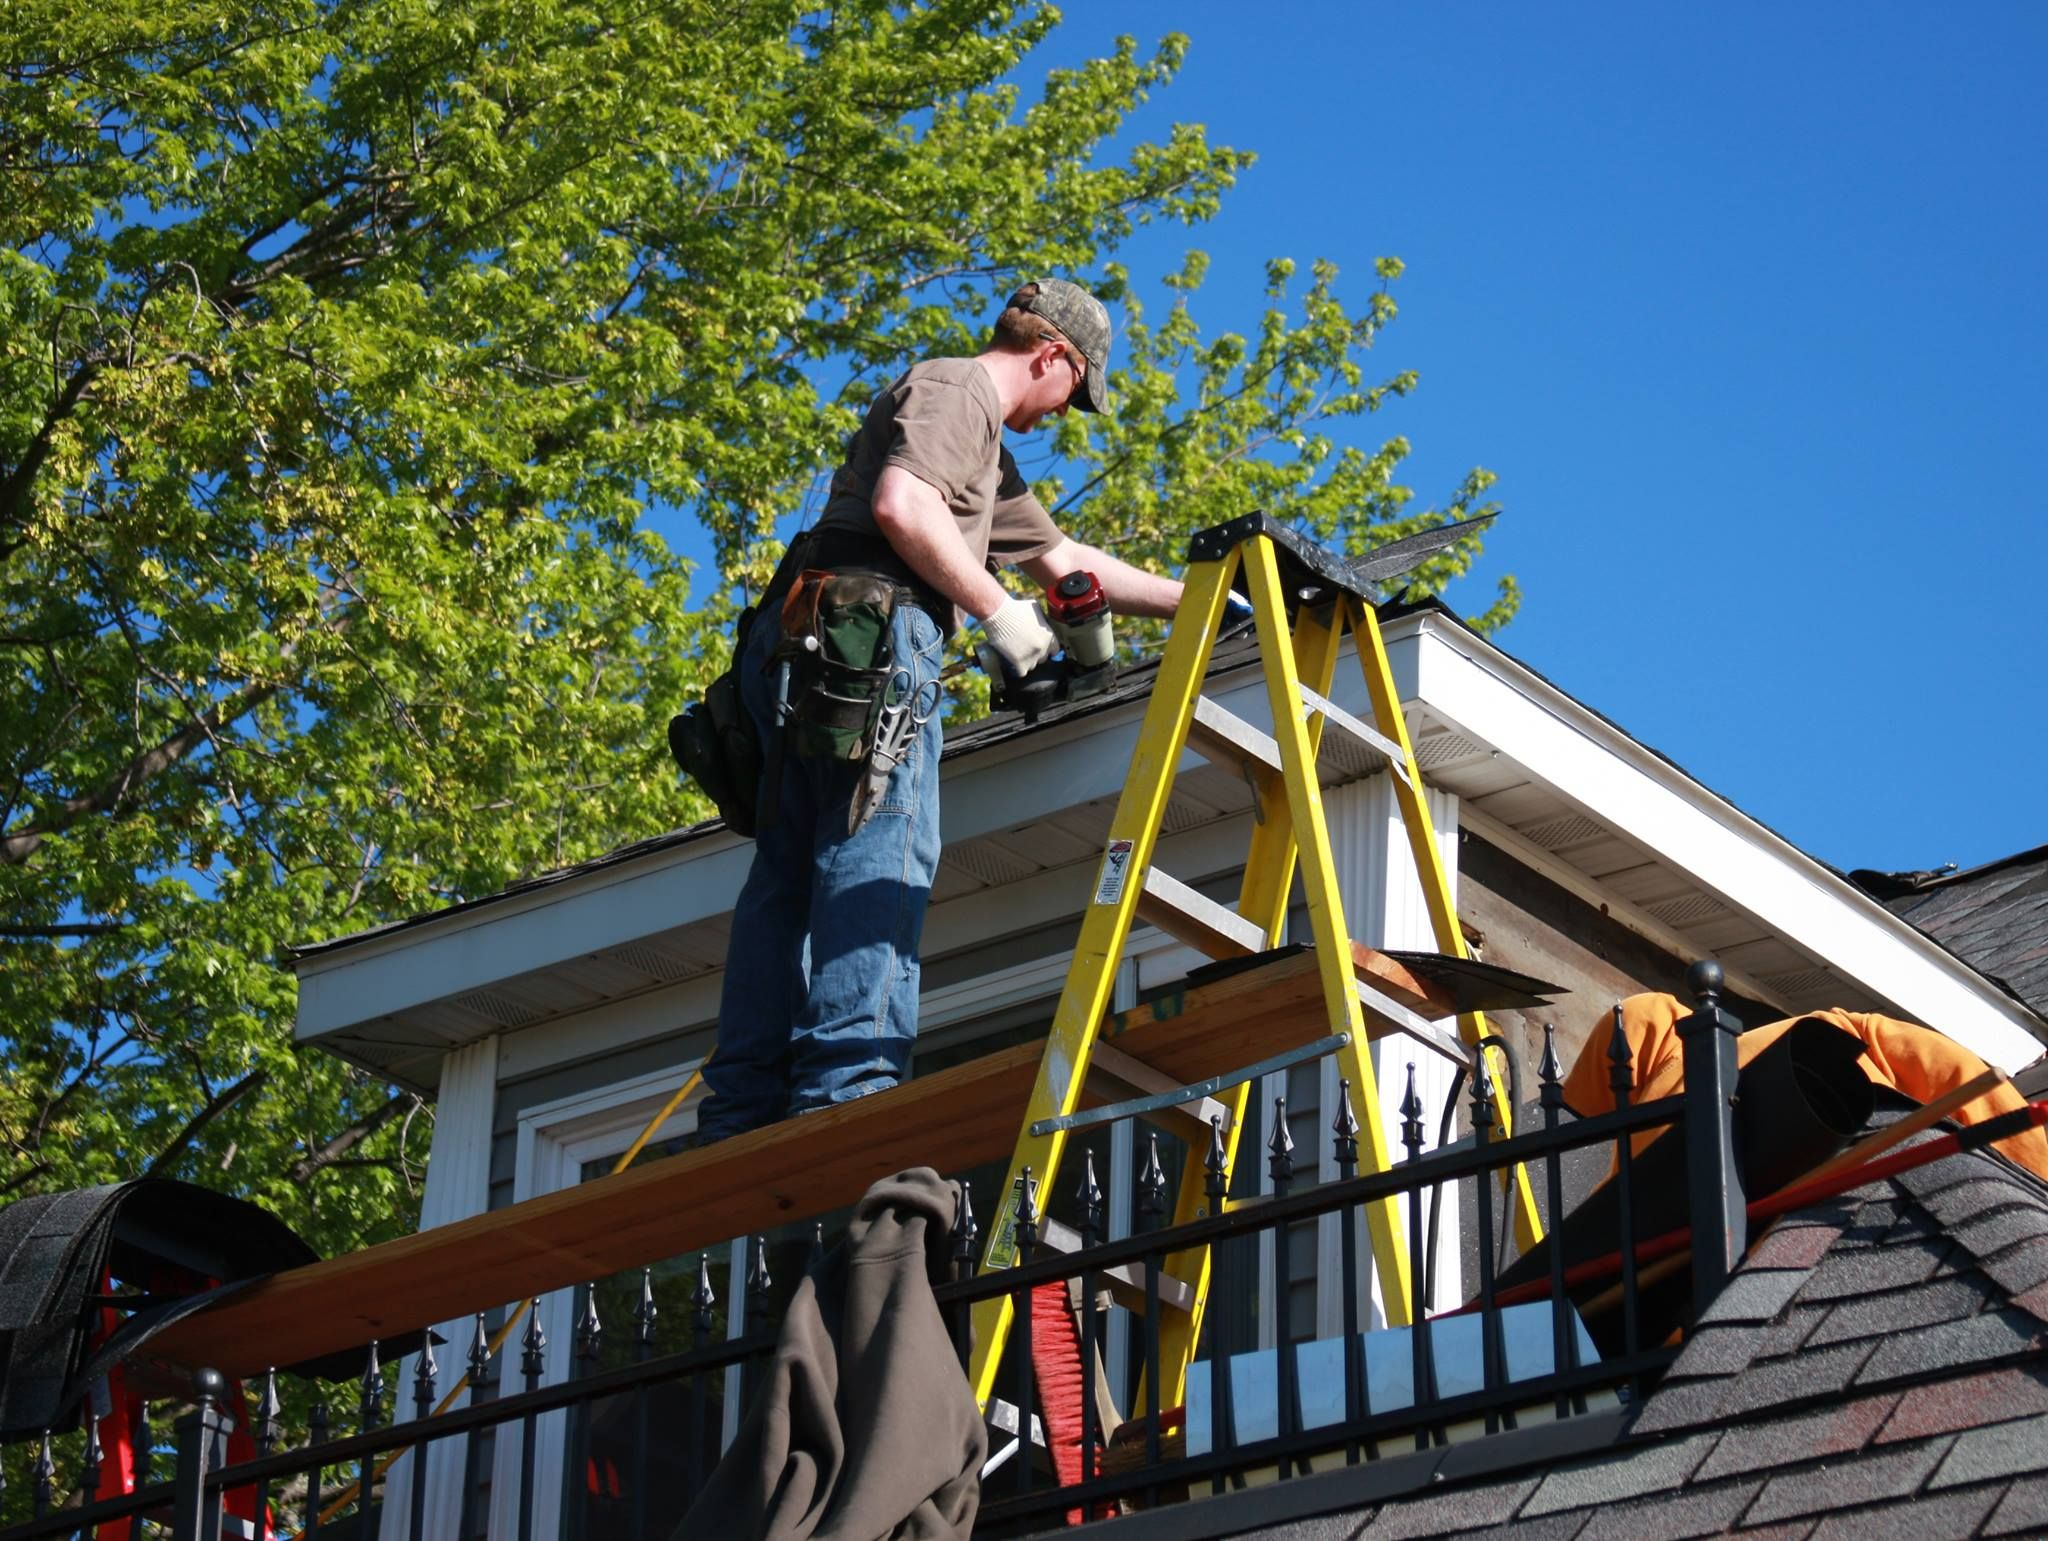 Hail Damage Asphalt Shingles Nmc Roofing Repair Nmc Roofing Inspection Nmc Can Help If You Think Your Roofing Has Hail Damage Roof Repair Roofing Repair